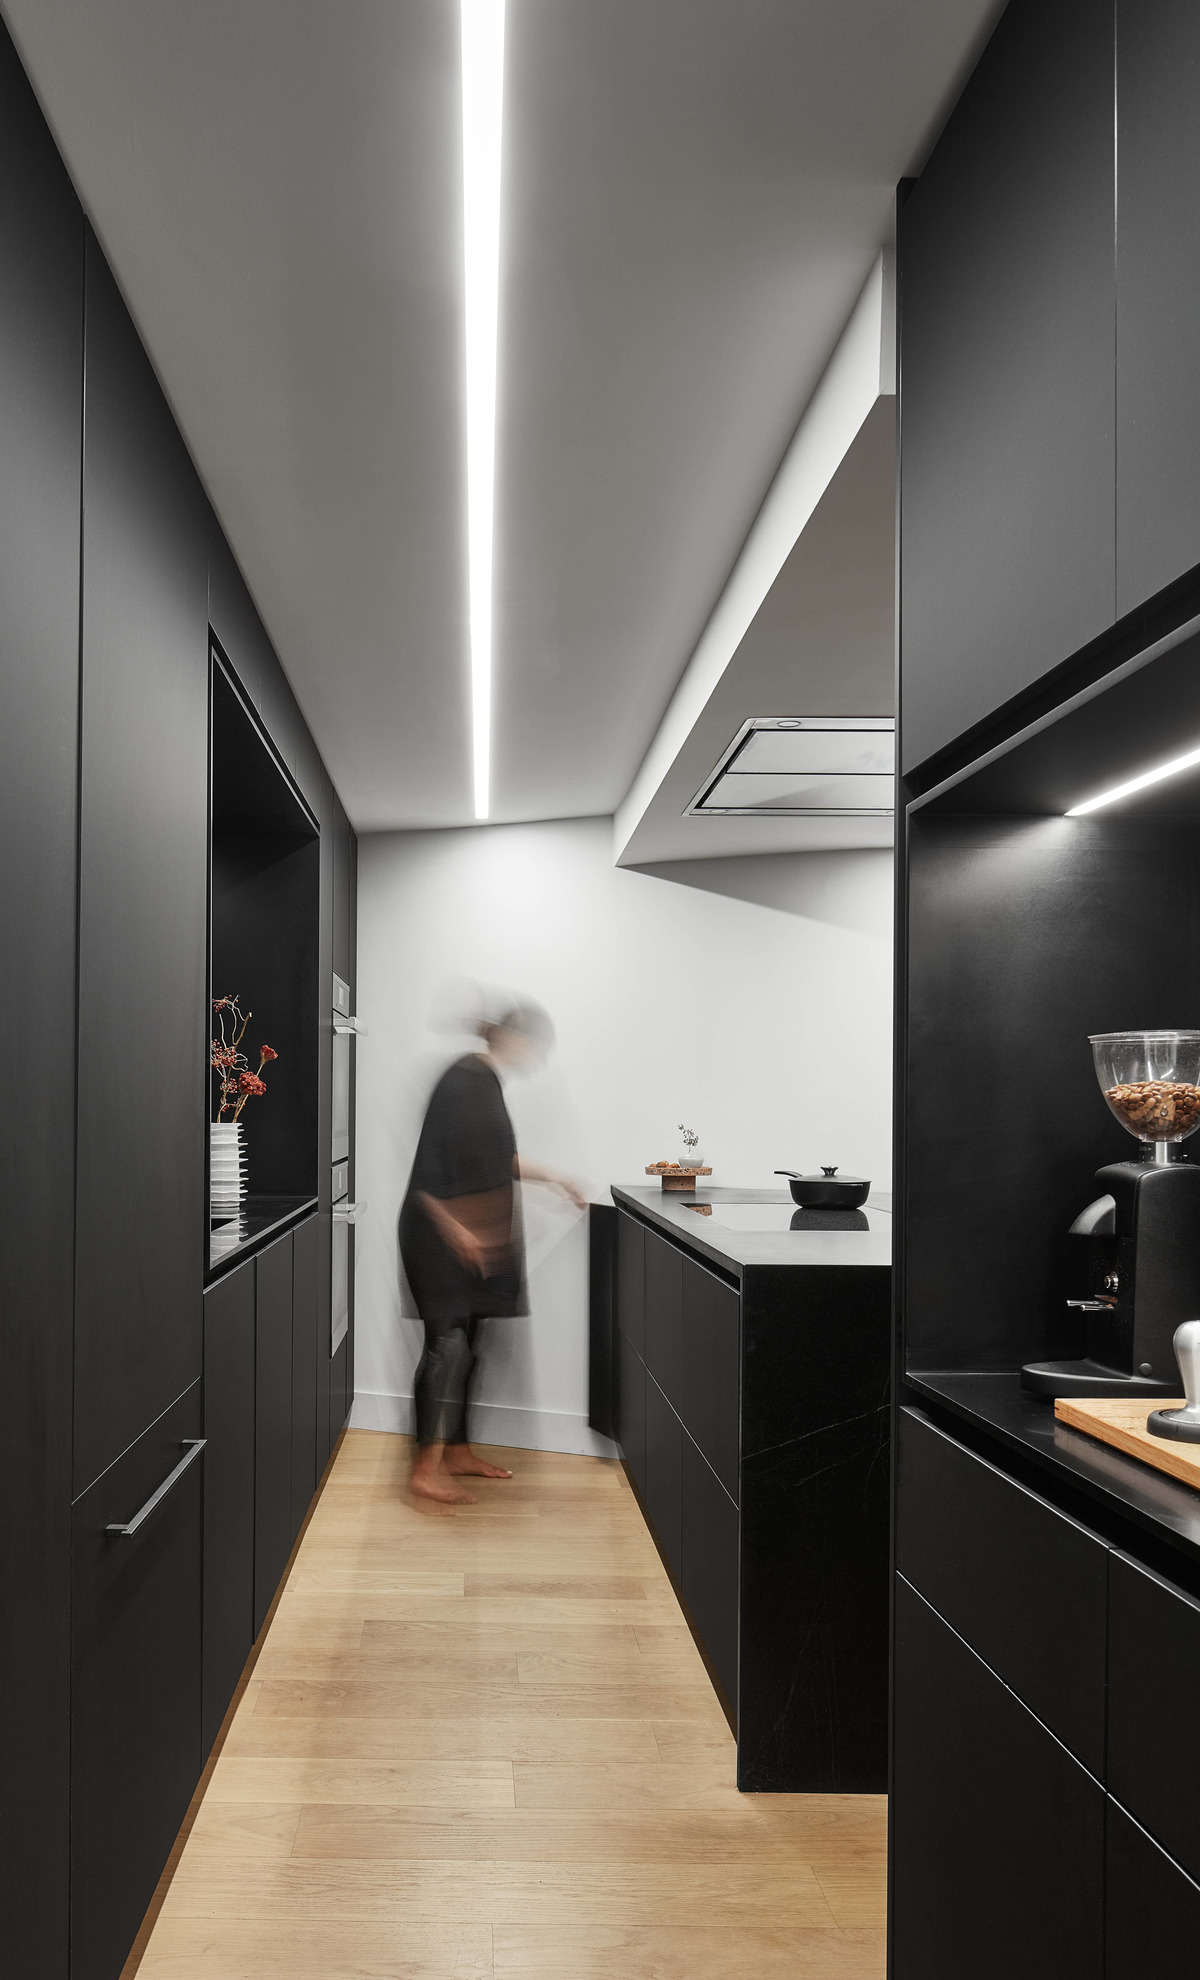 A modern matte black kitchen with hardware free cabinets, a large island, and a coffee station.